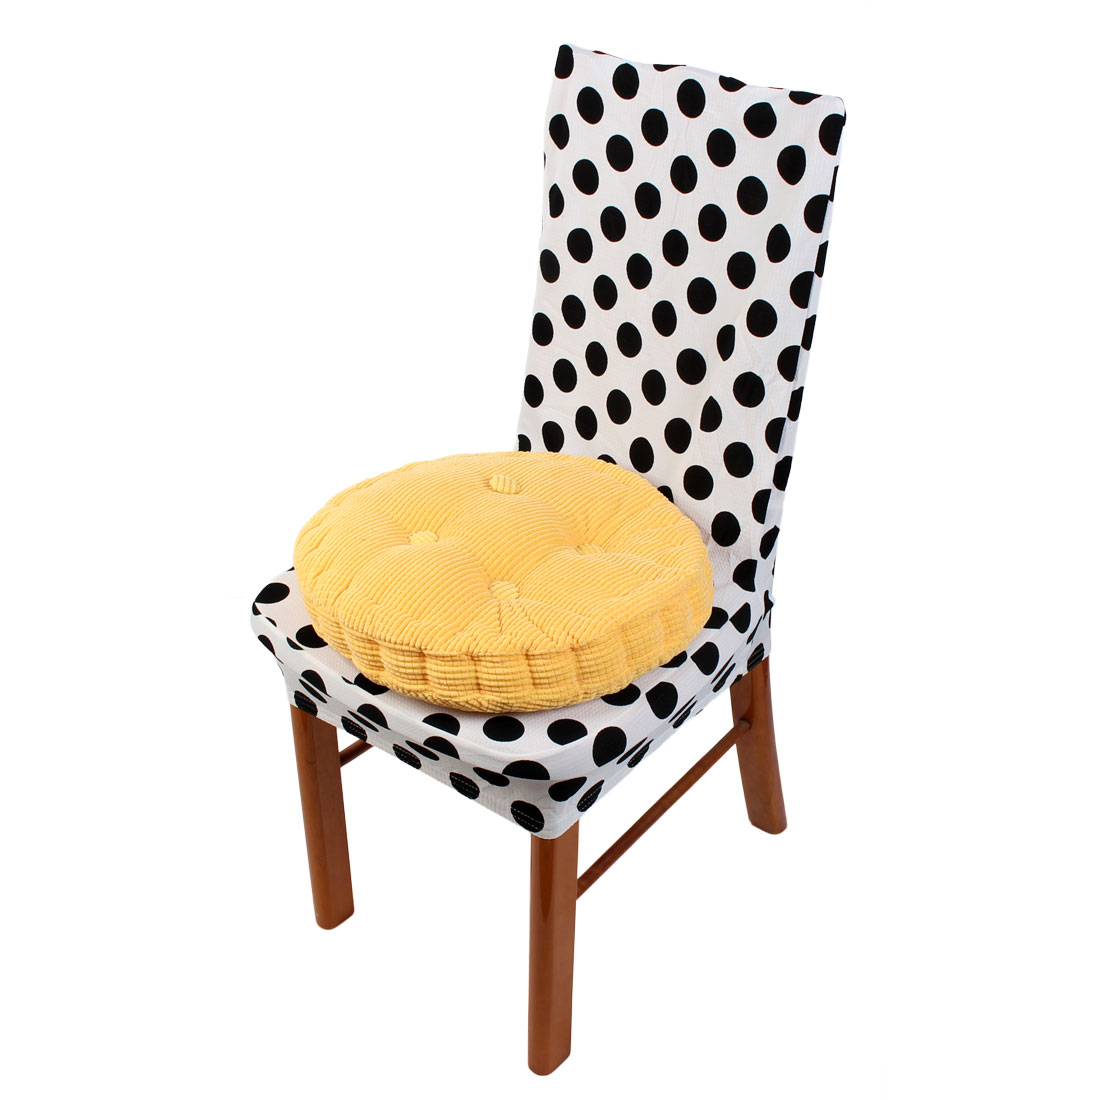 Unique Bargains Home Office Patio Round Shaped Seat Comfortable Cushion Chair Pad for Indoor Outdoor Use